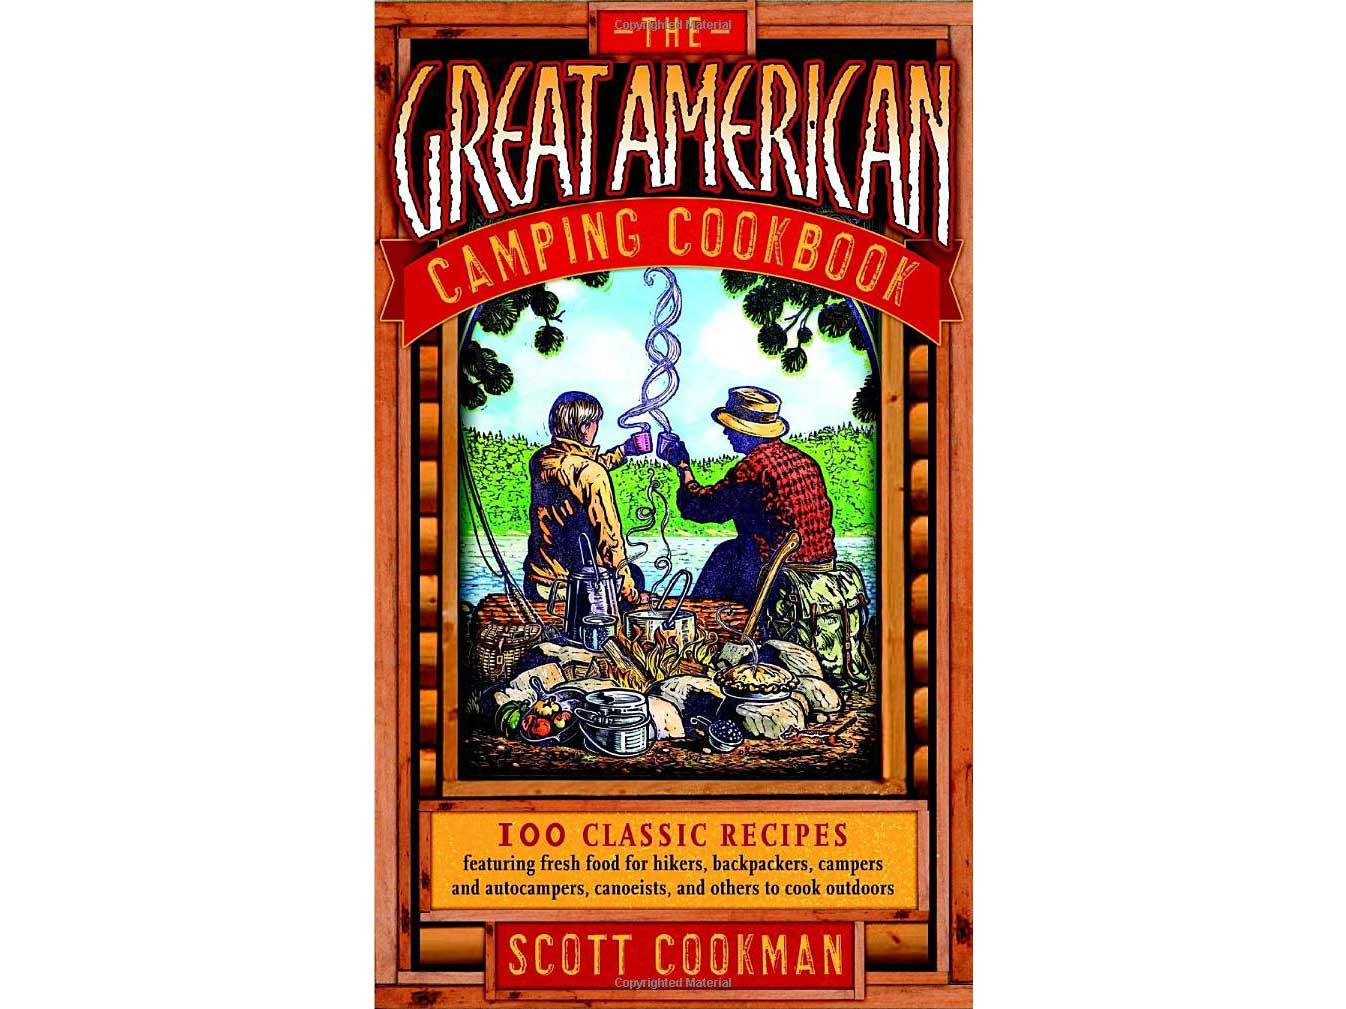 The Great American Camping Cookbook by Scott Cookman